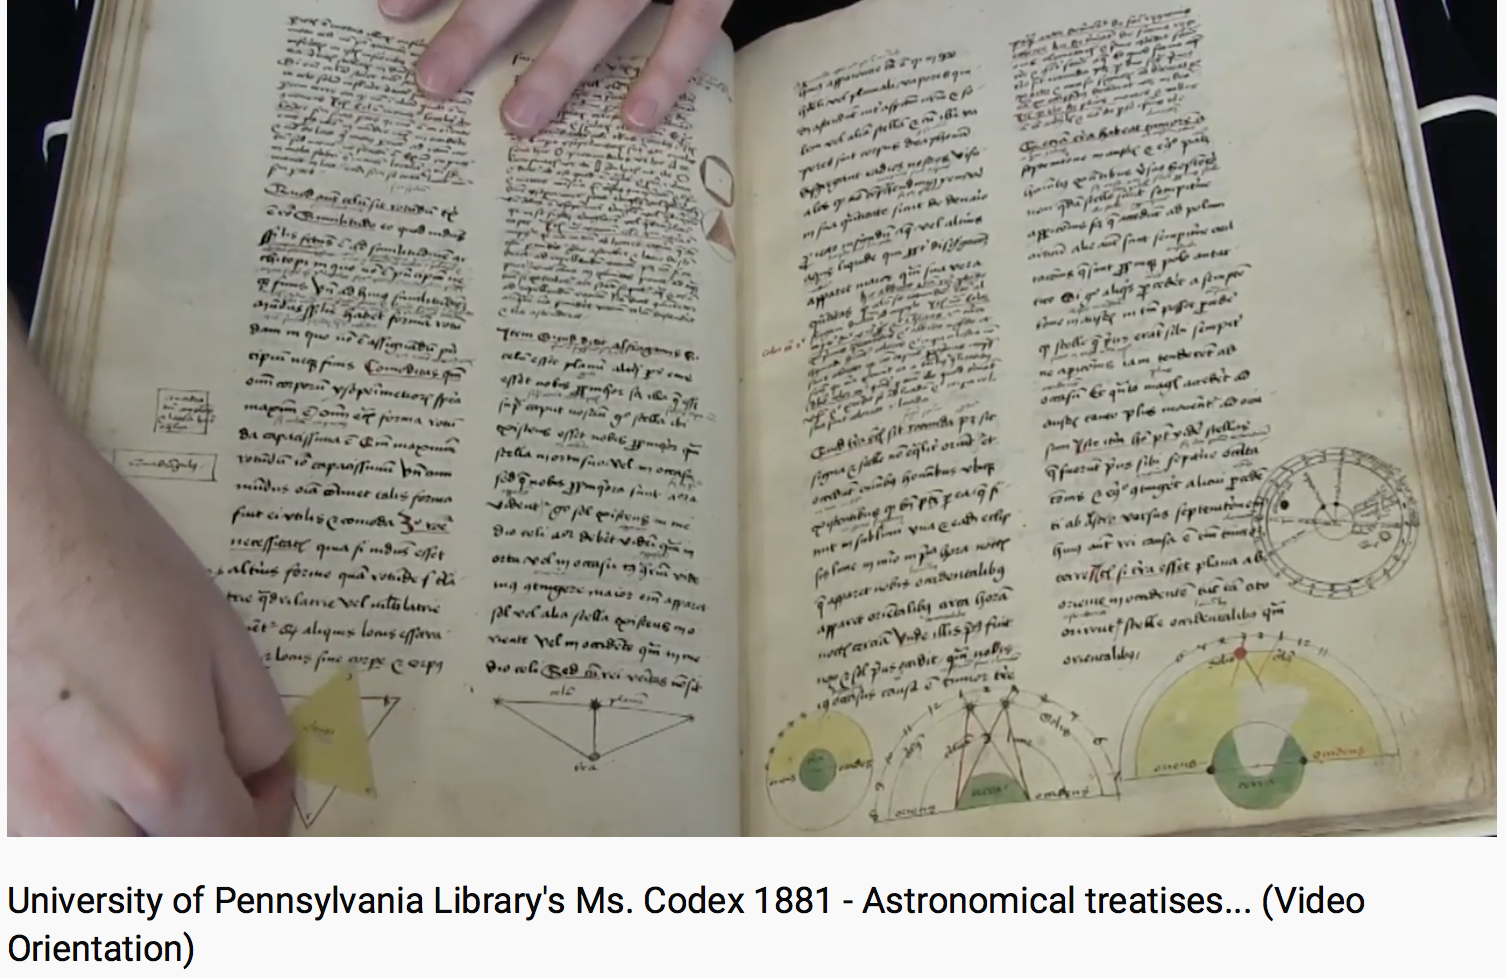 The Schoenberg Institute's Curator of Manuscripts, Nicholas Herman, manipulates a volvelle in his video orientation to Kislak Center for Special Collections, Rare Books and Manuscripts, MS Codex 1881.